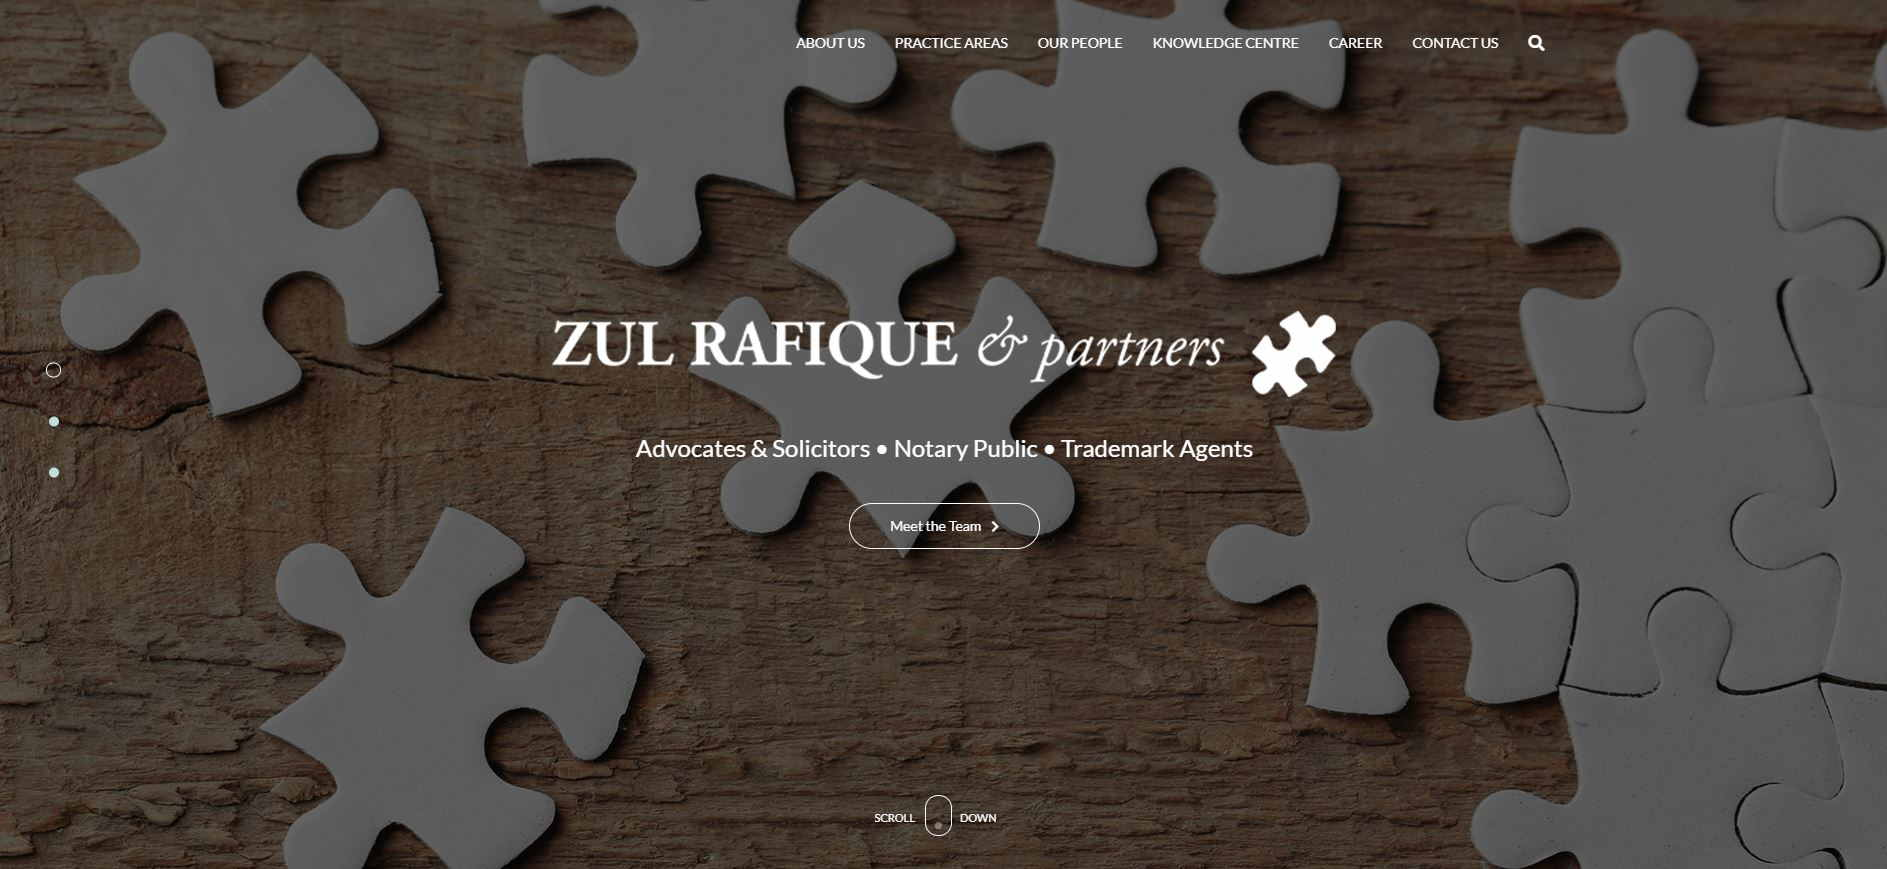 web design for lawyers_zul rafique partners